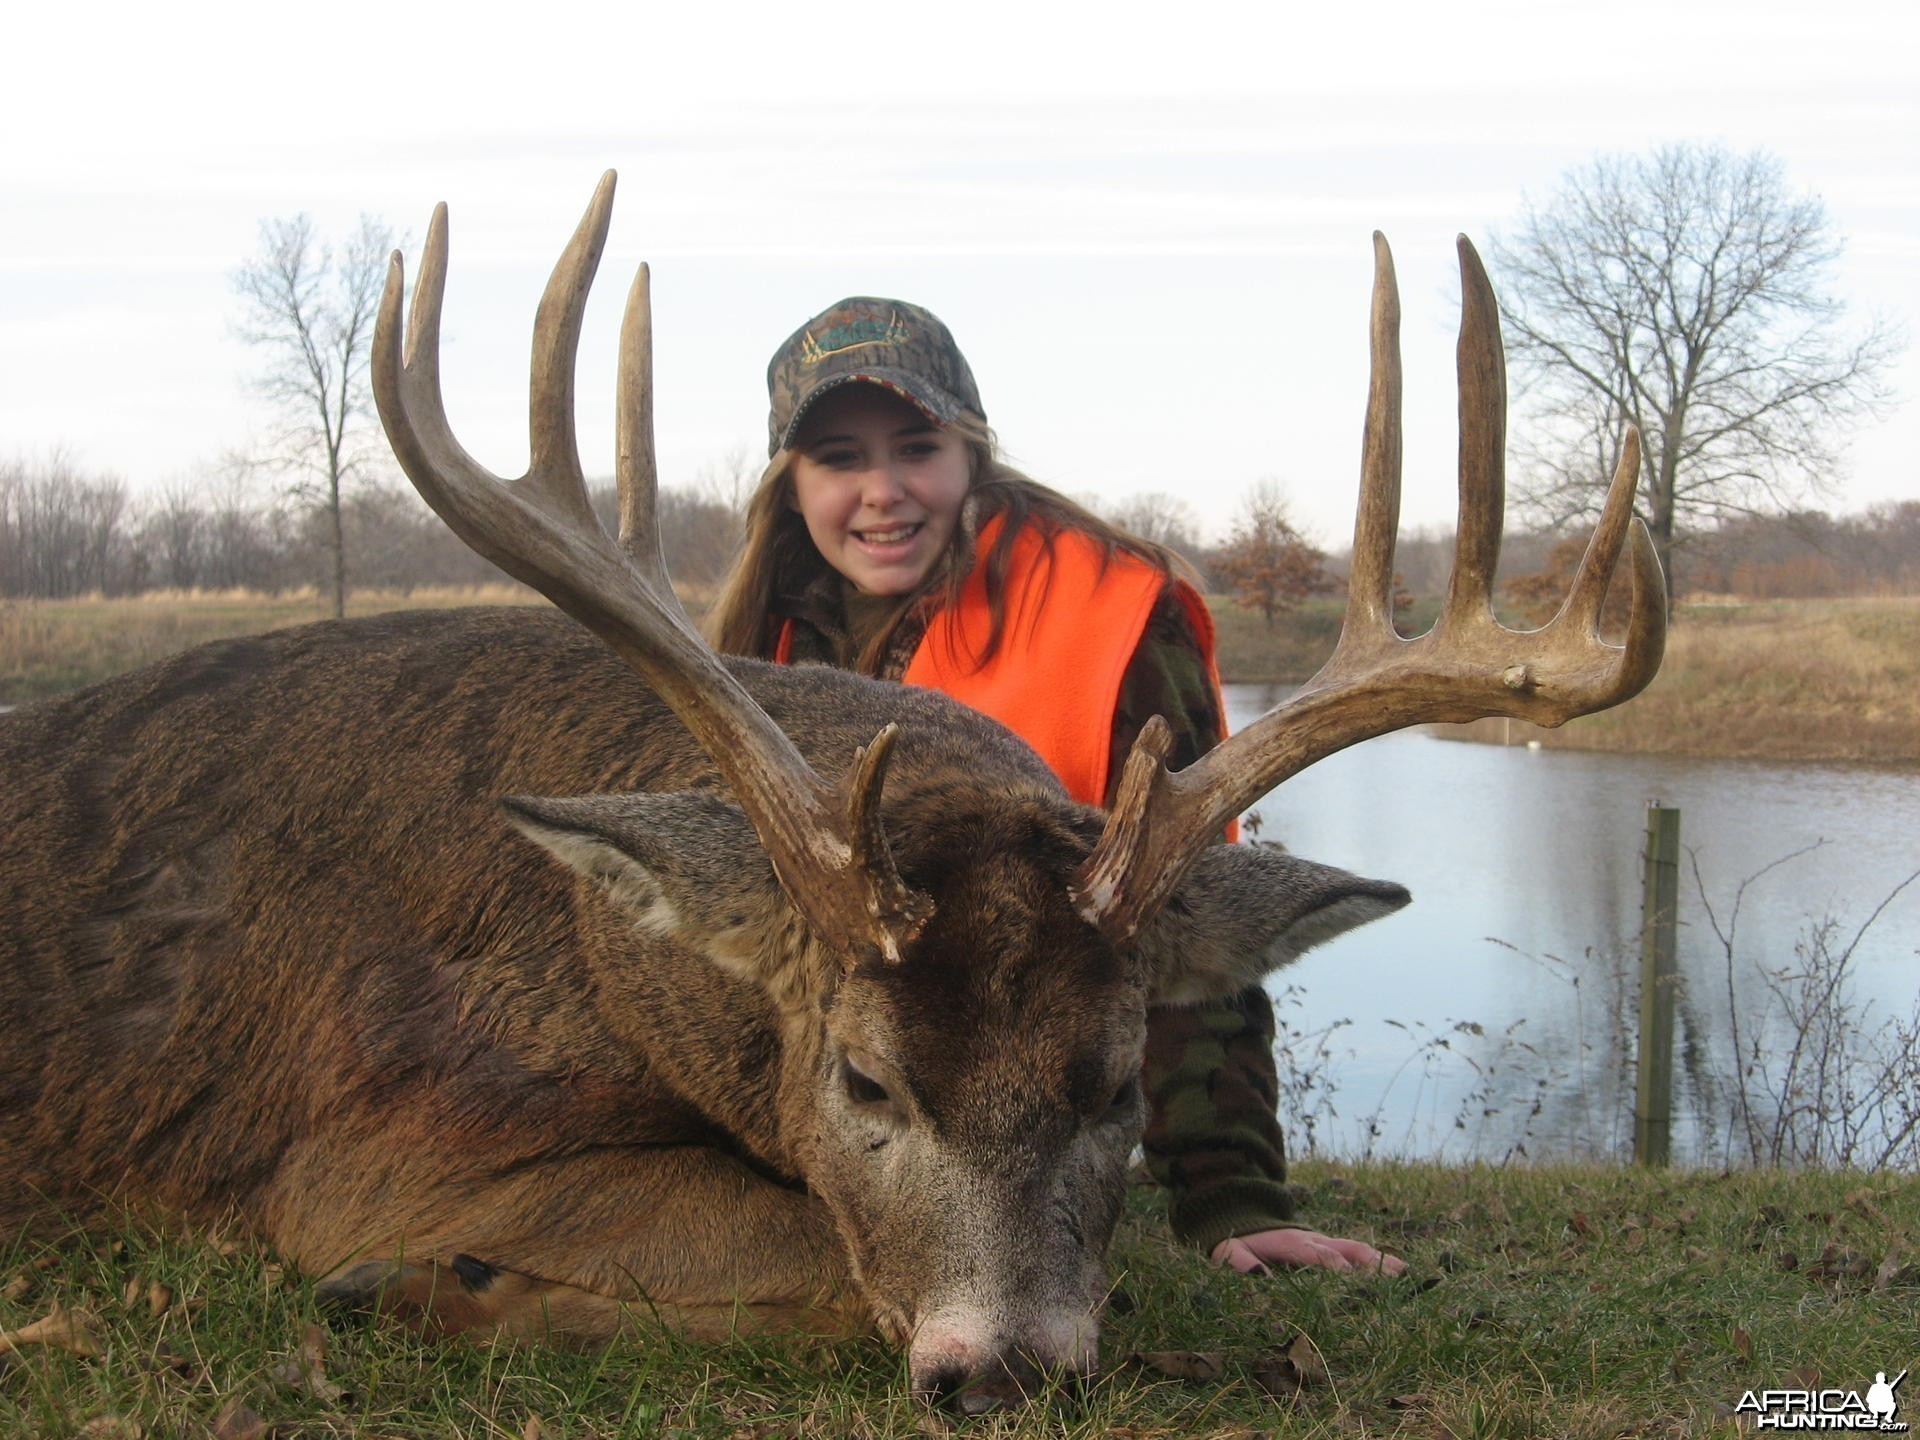 My Daughter Taylor is my hunting buddie and oh yeah she can hunt